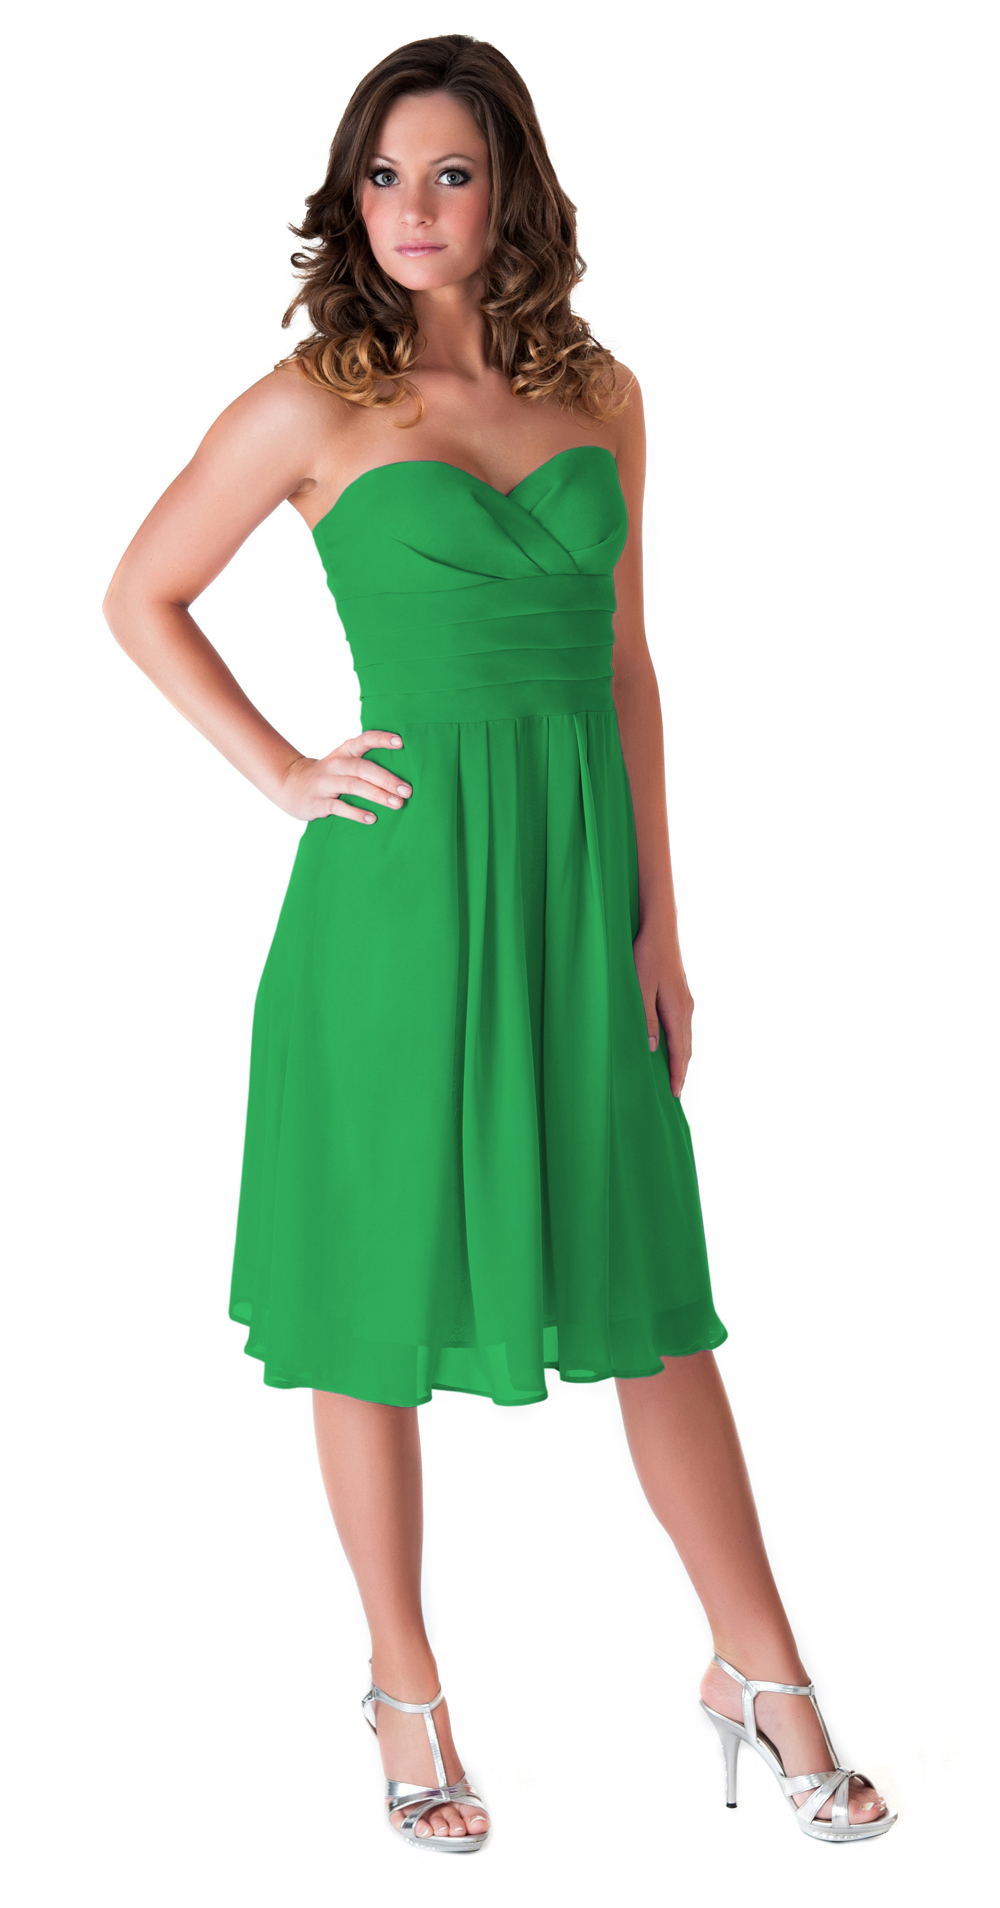 Formal Dress Evening Gown Bridesmaid Wedding Party Prom XS - 2xl XL ...